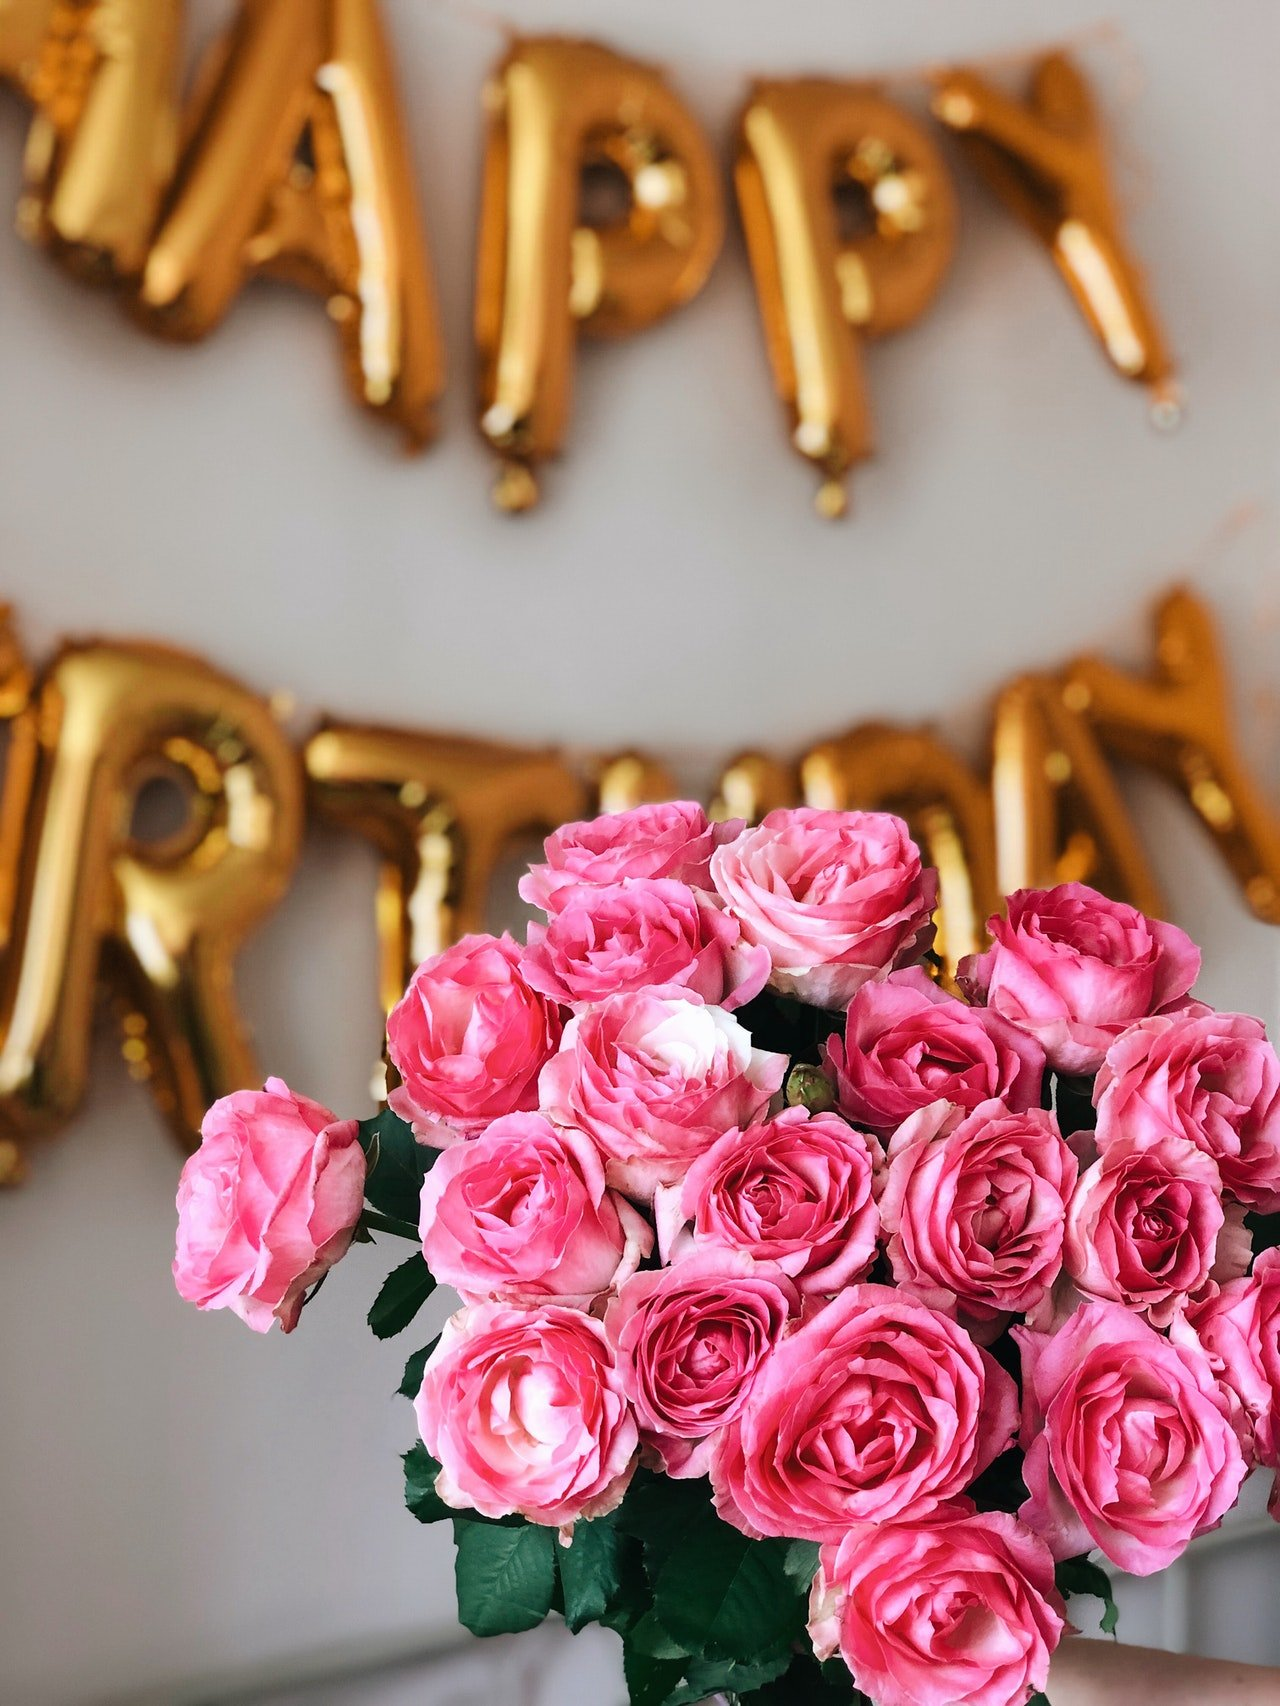 Beautiful flowers with birthday balloons in the background | Photo: Pexels